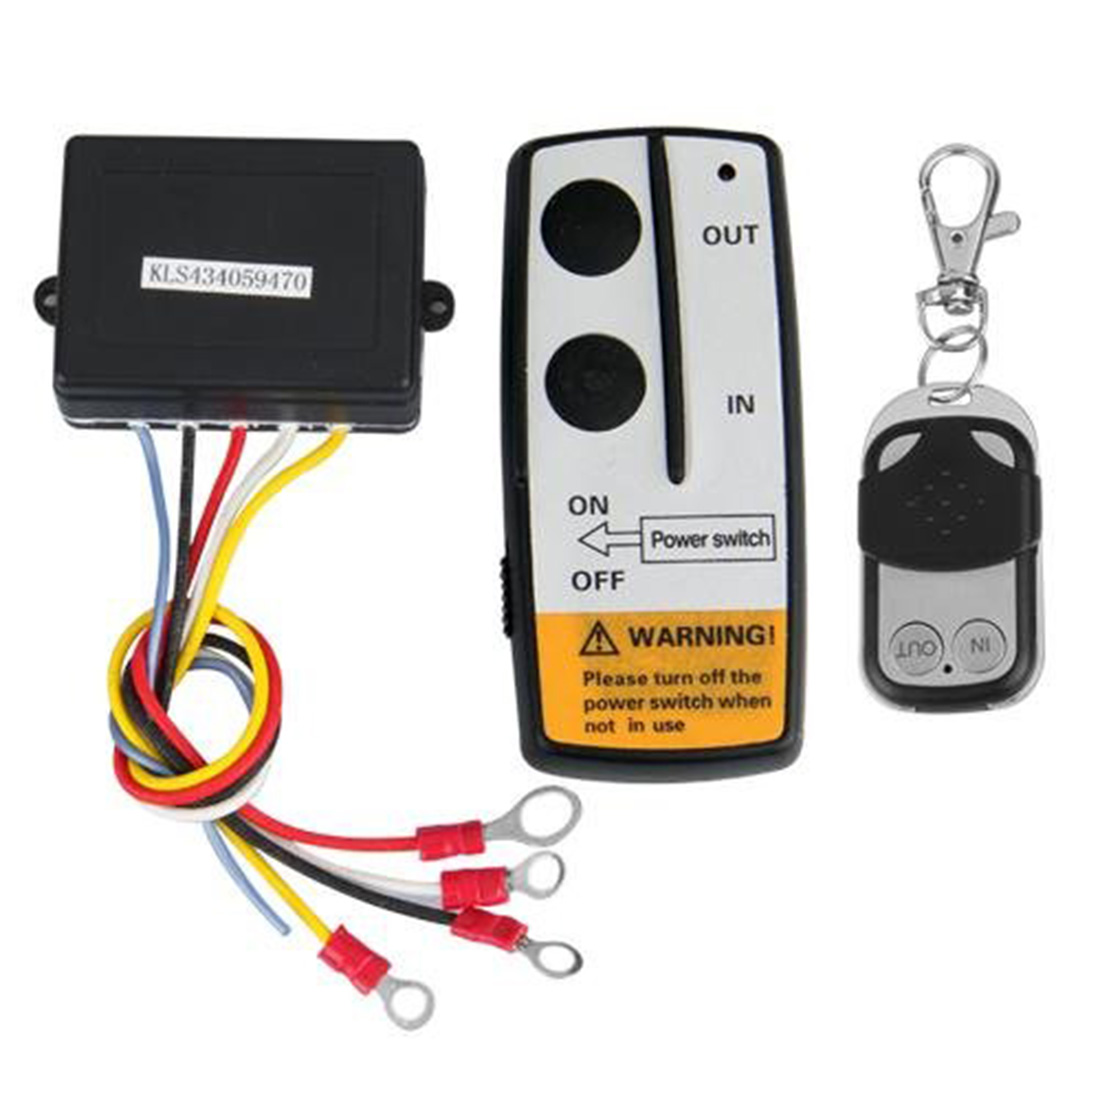 universal wireless winch remote control kit 12v 50ft 2 remotes with indicator light car detector for truck jeep atv suv [ 1100 x 1100 Pixel ]